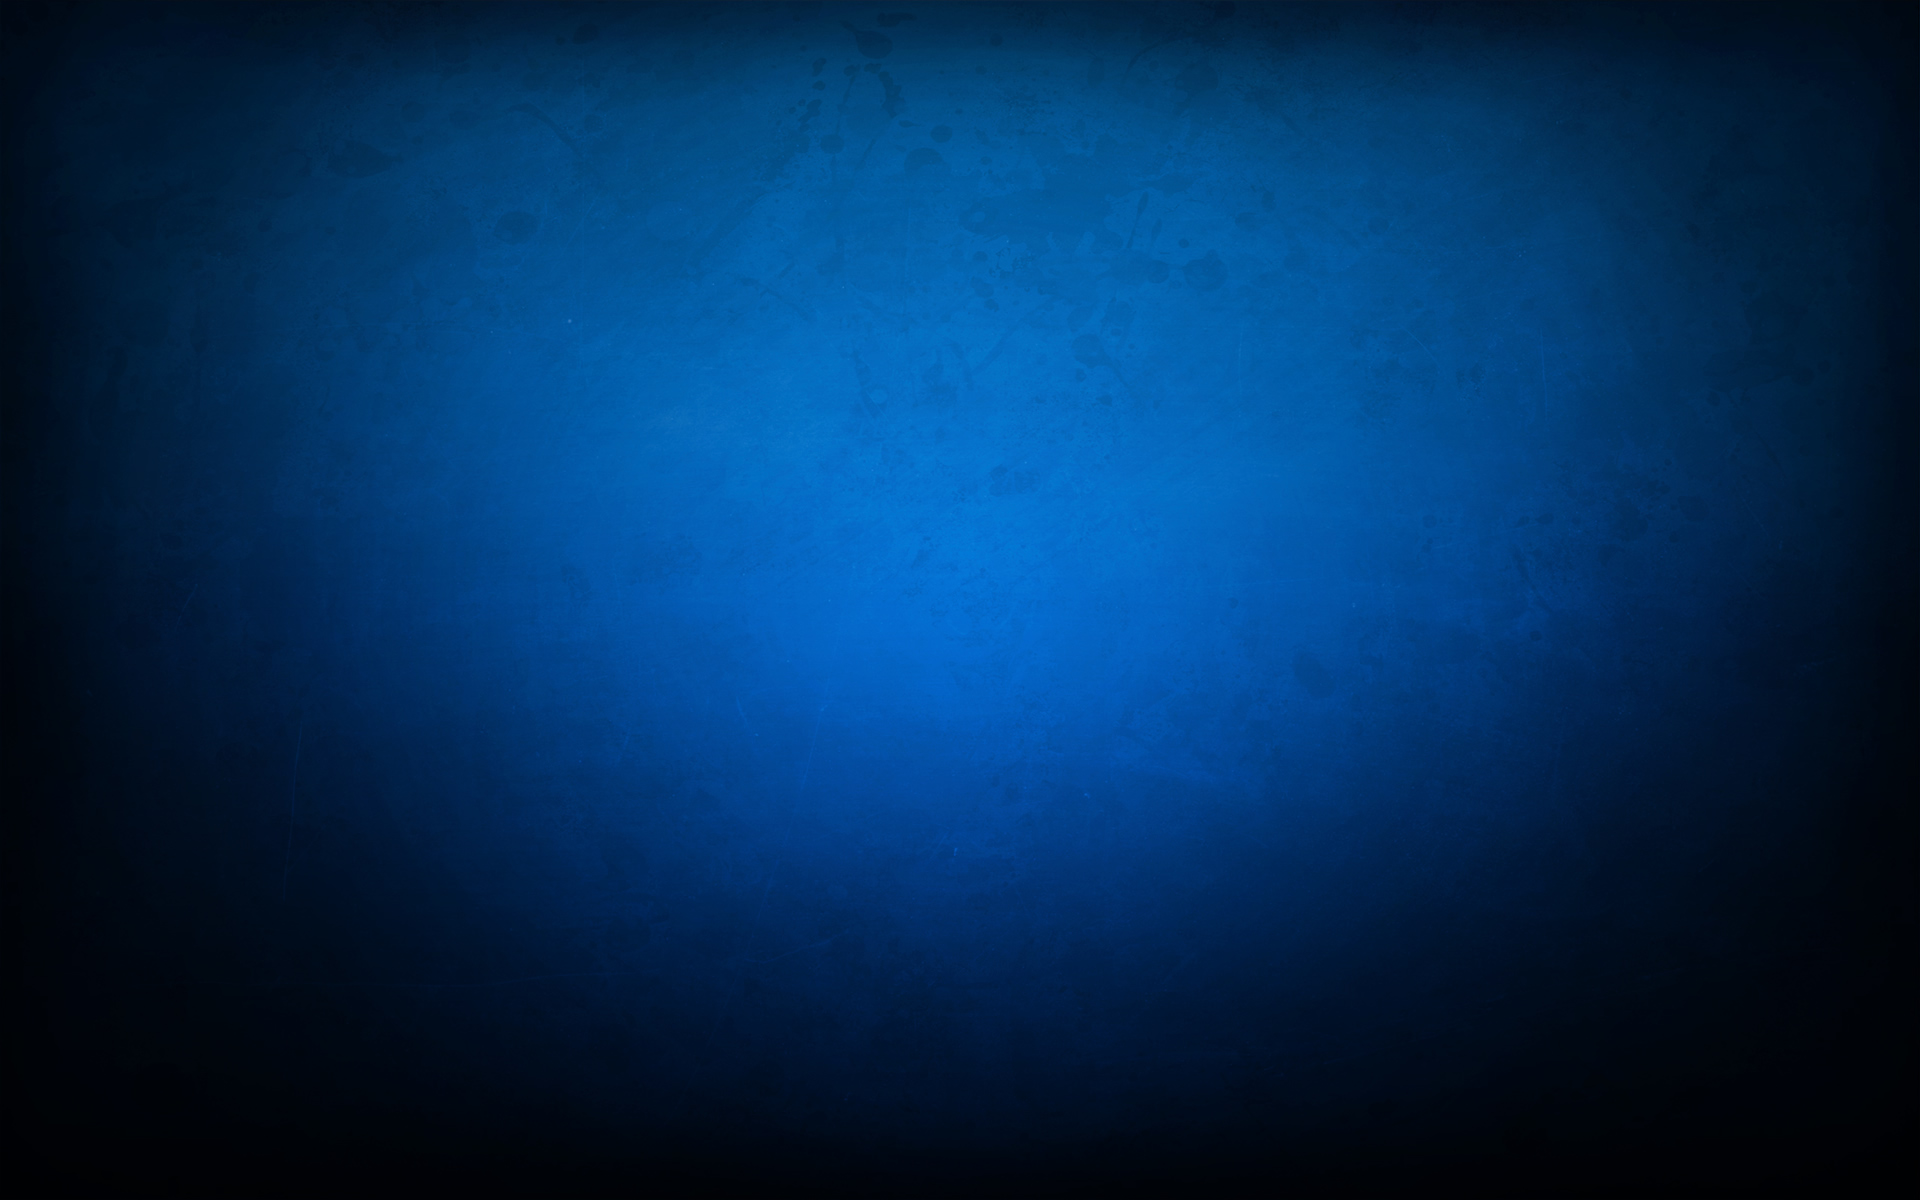 Dark Blue HD Wallpapers - WallpaperSafari